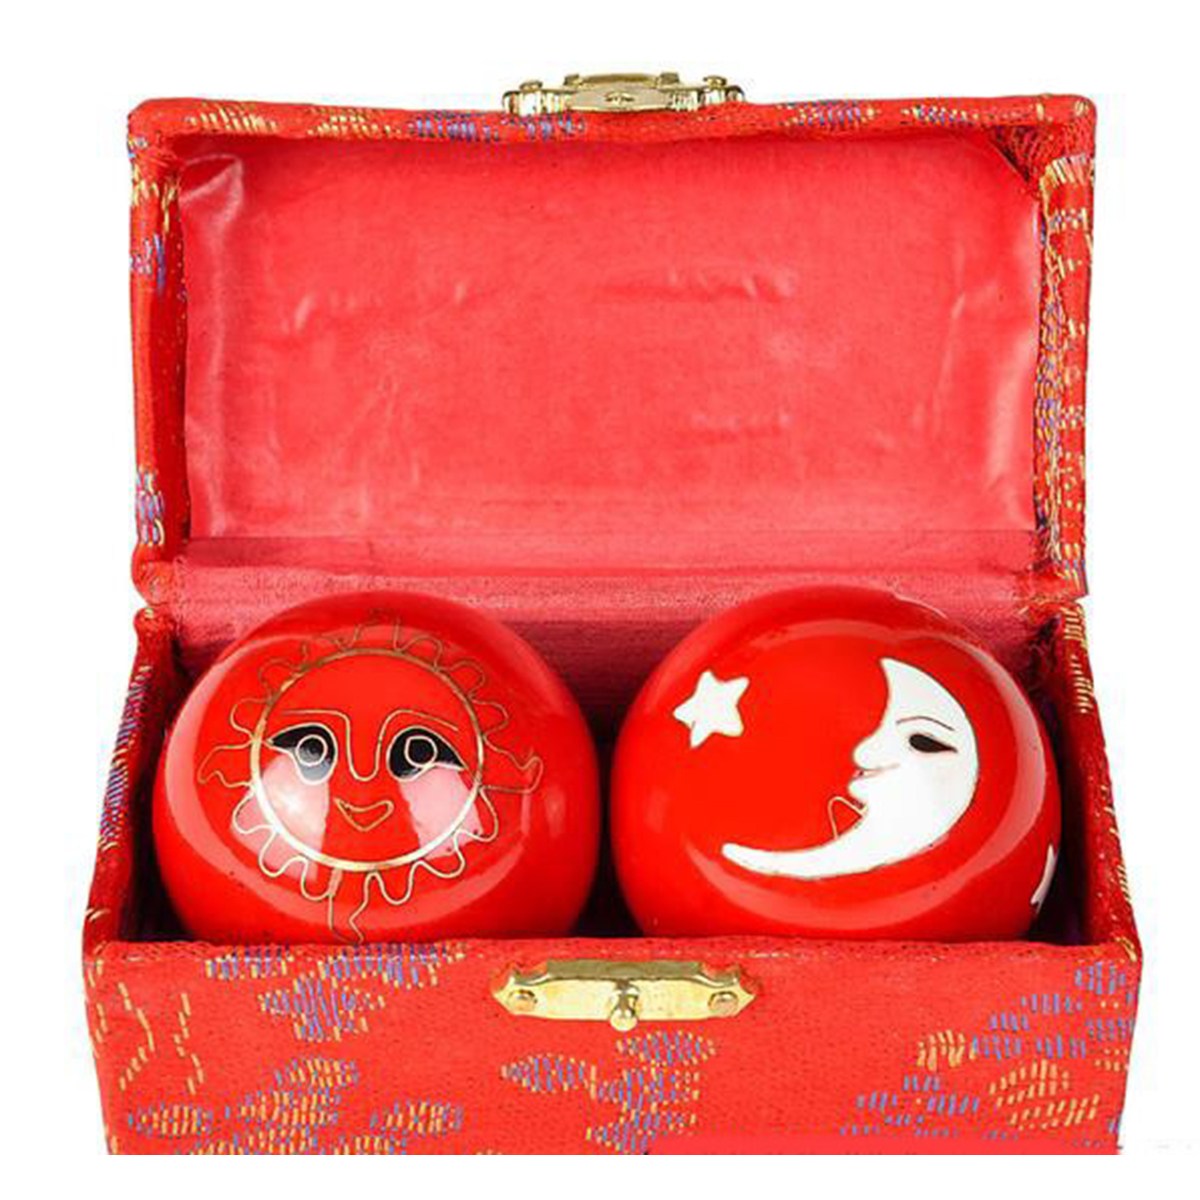 35mm 40mm Chinese Health Exercise Stress BAODING Balls Relaxation Therapy